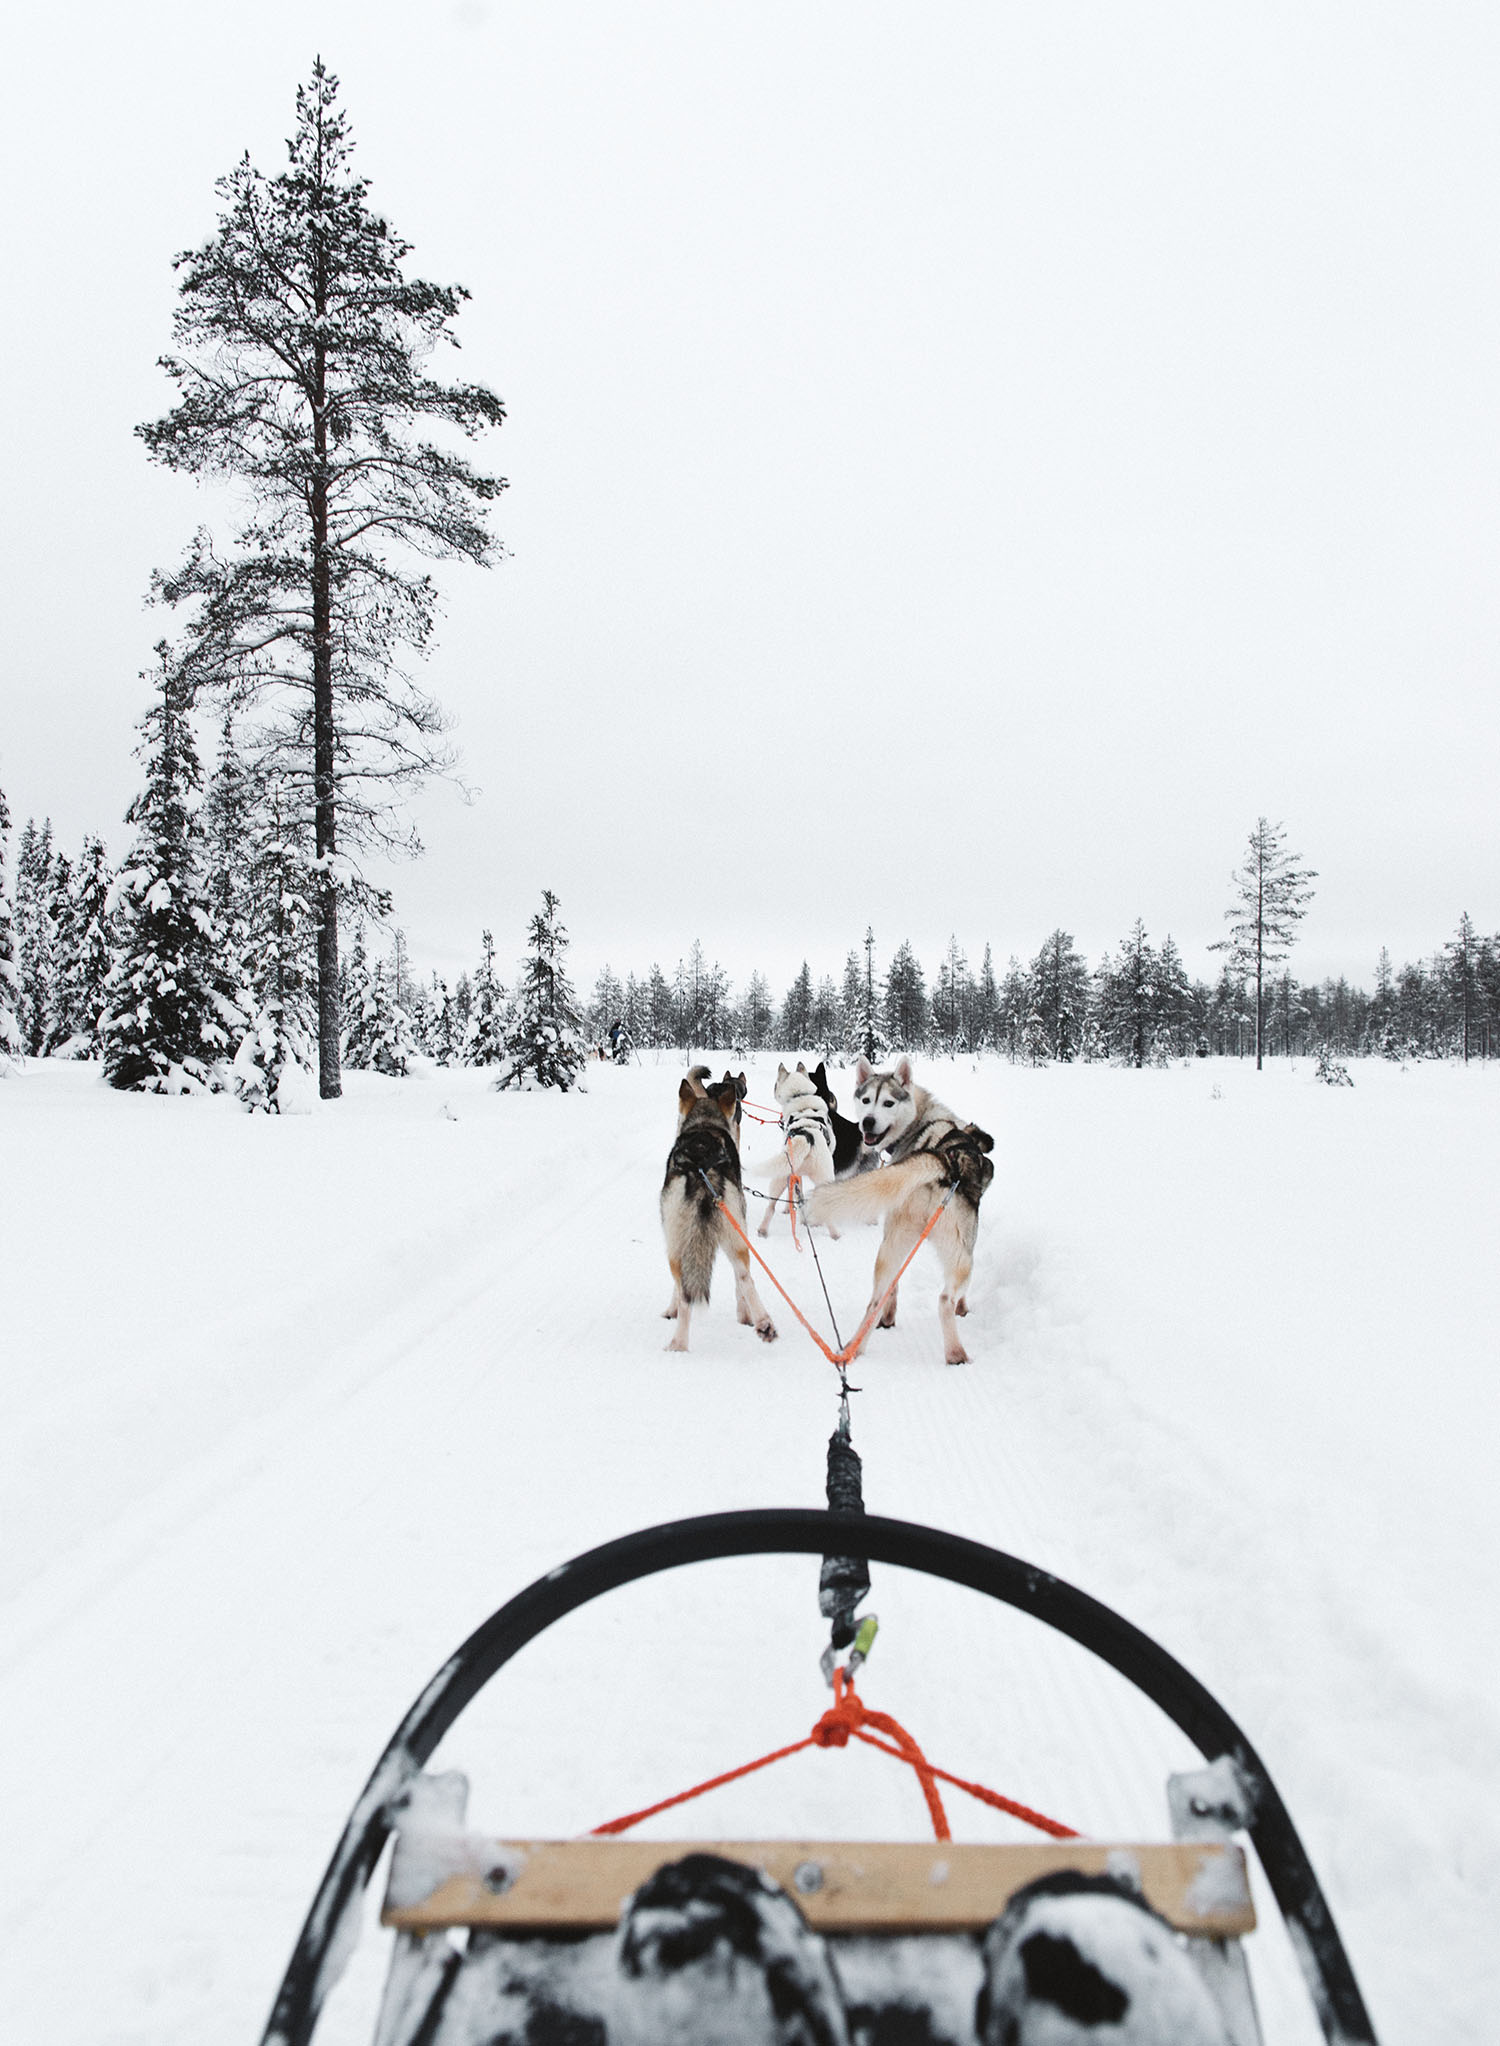 Husky Safari in Lapland, Finland